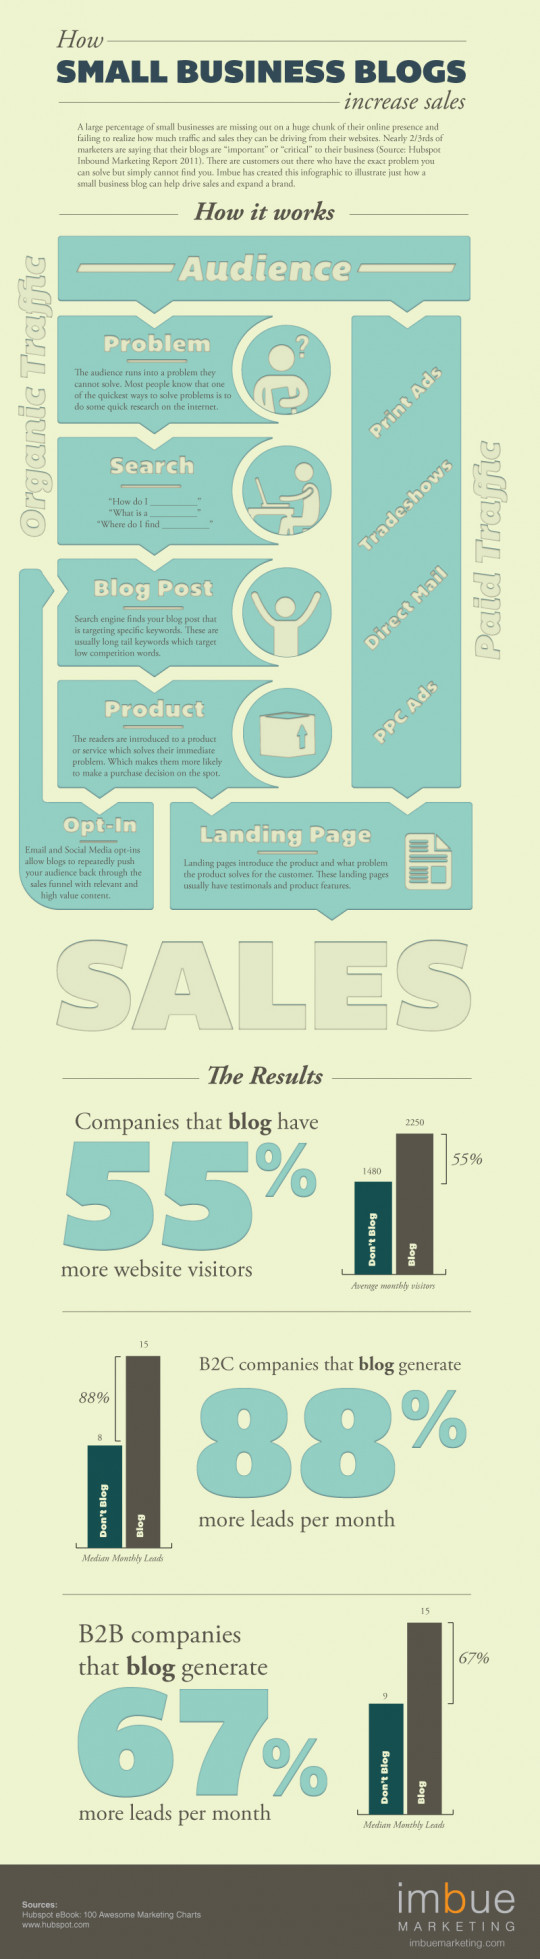 How Small Business Blogs Increase Sales